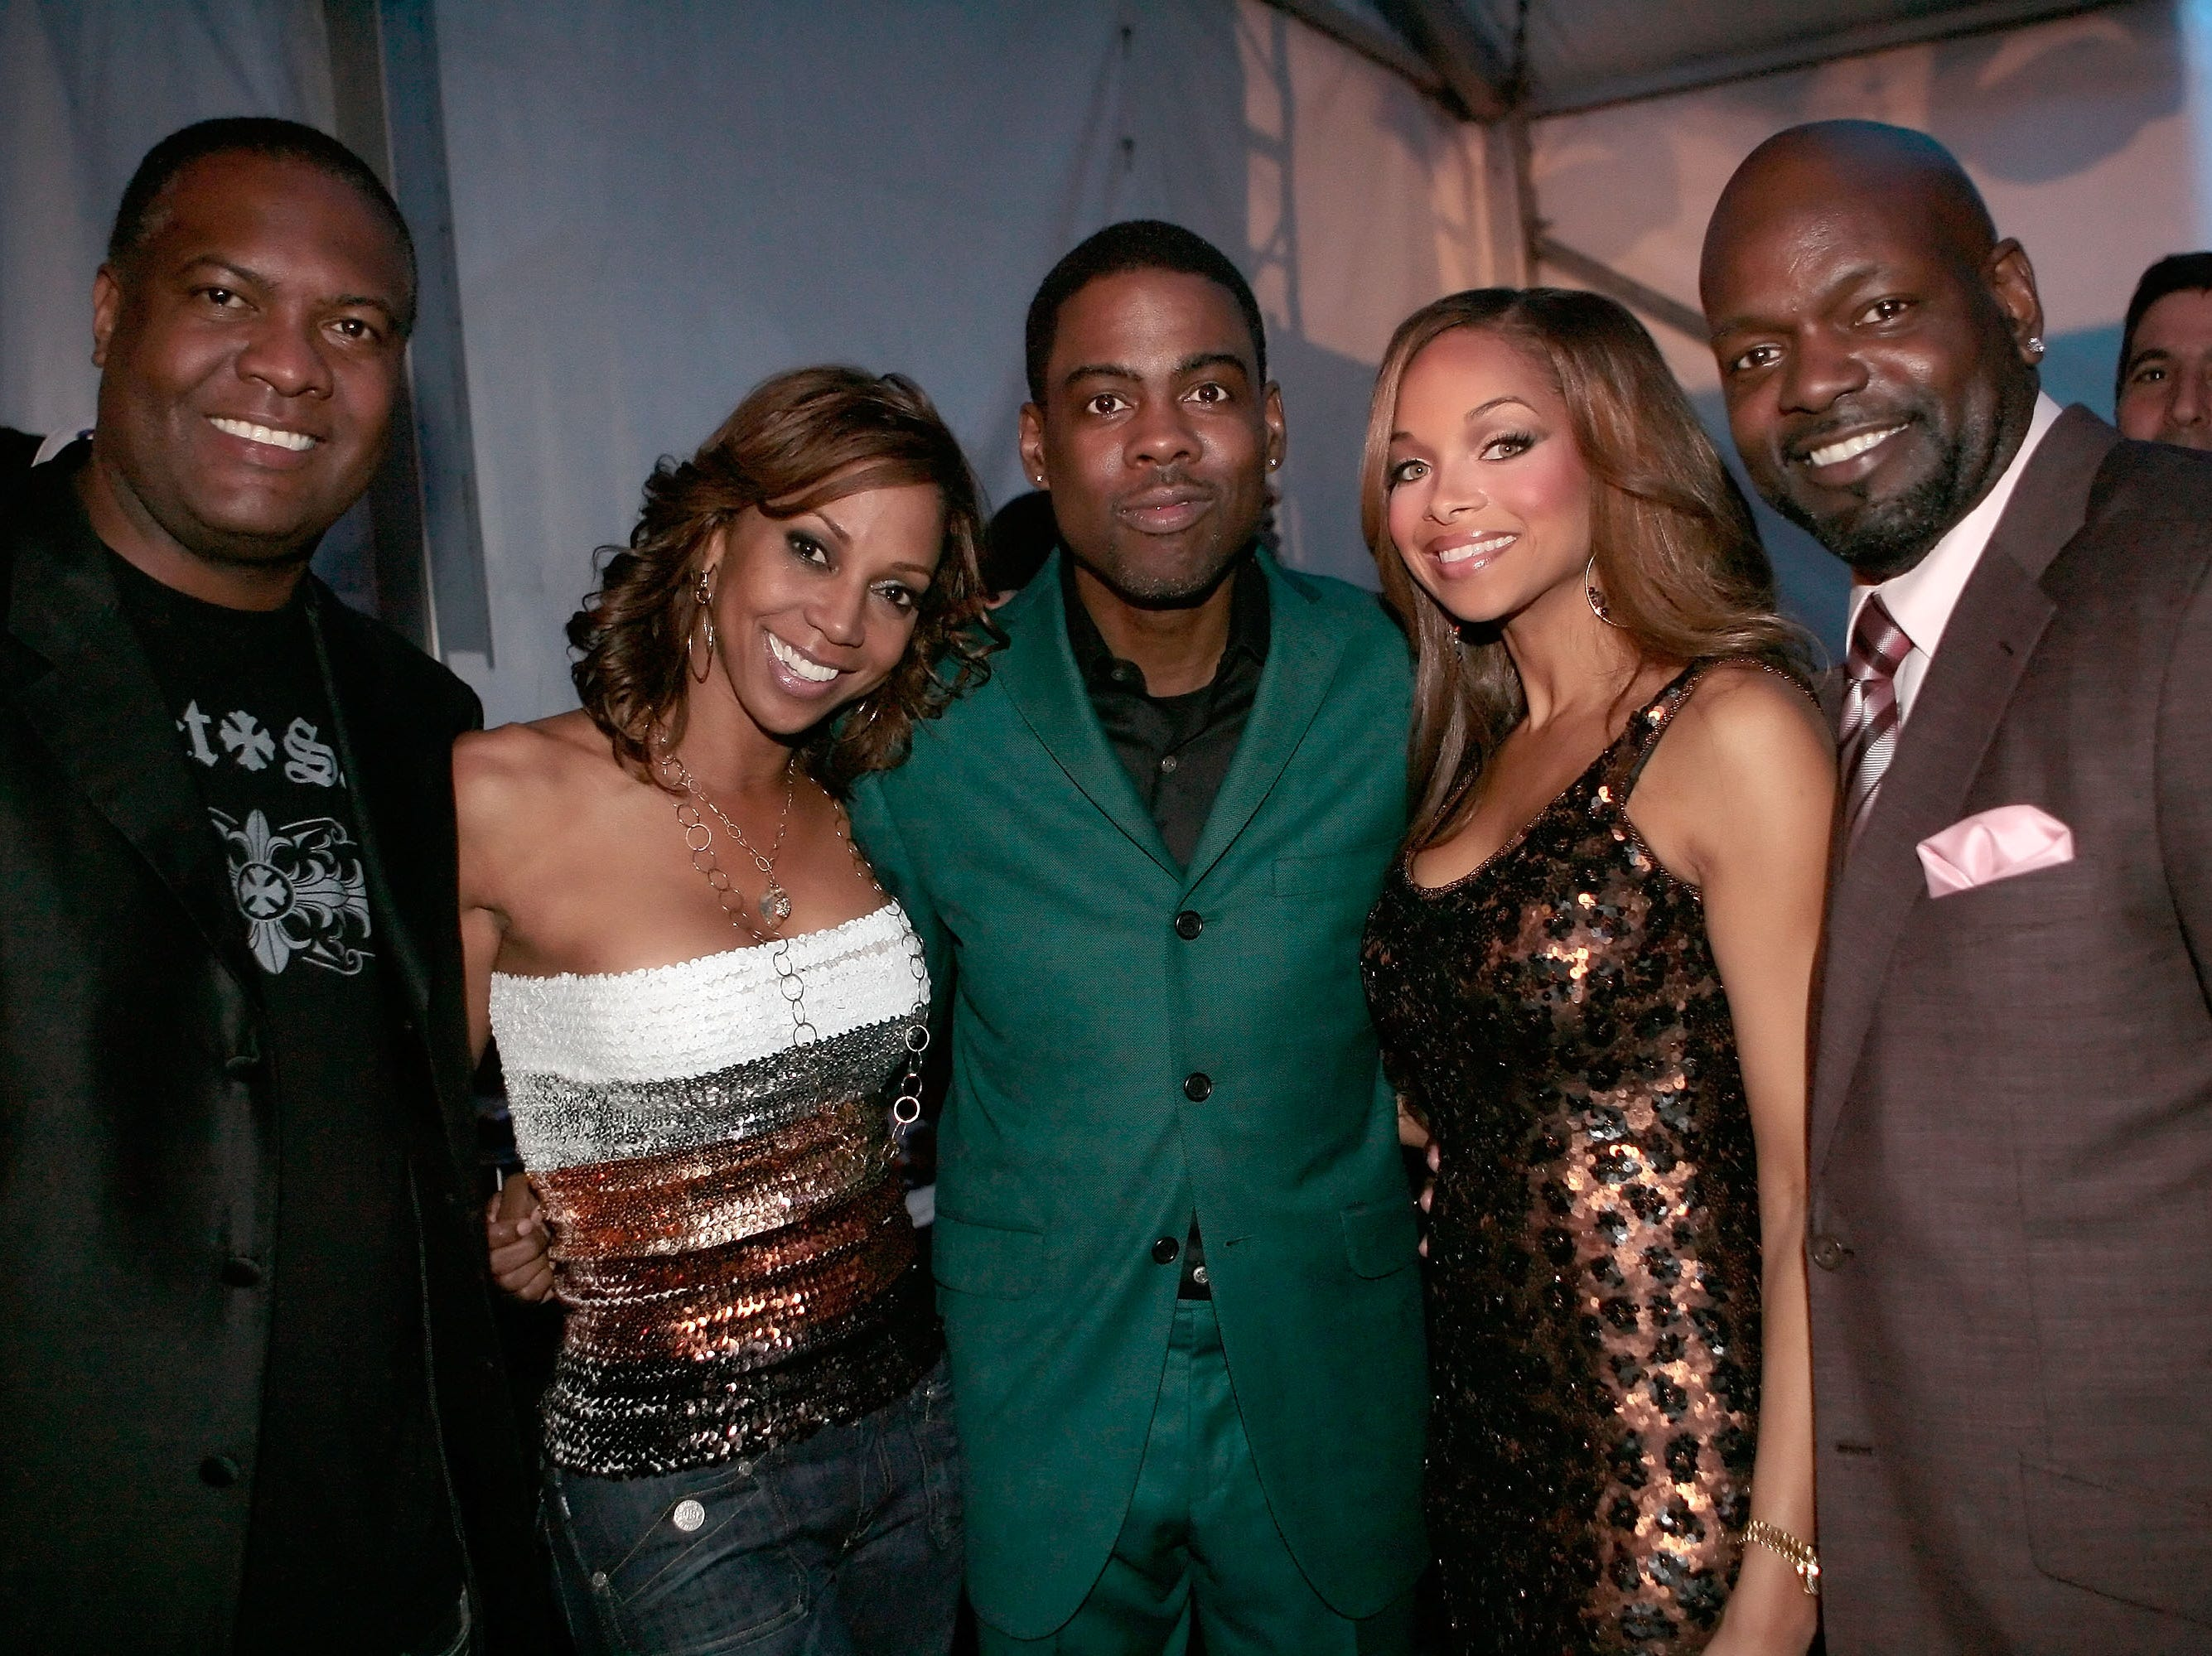 PHOENIX - FEBRUARY 02:  (L-R) Former NFL player Rodney Peete, wife Holly Robinson Peete , comedian Chris Rock, Patricia Southall and Emmitt Smith attend the Chris Rock Live in Concert performance benefiting the HollyRod Foundation held at Prive Lounge on February 2, 2008 in Phoenix, Arizona.  (Photo by Charley Gallay/Getty Images for HollyRod Foundation)